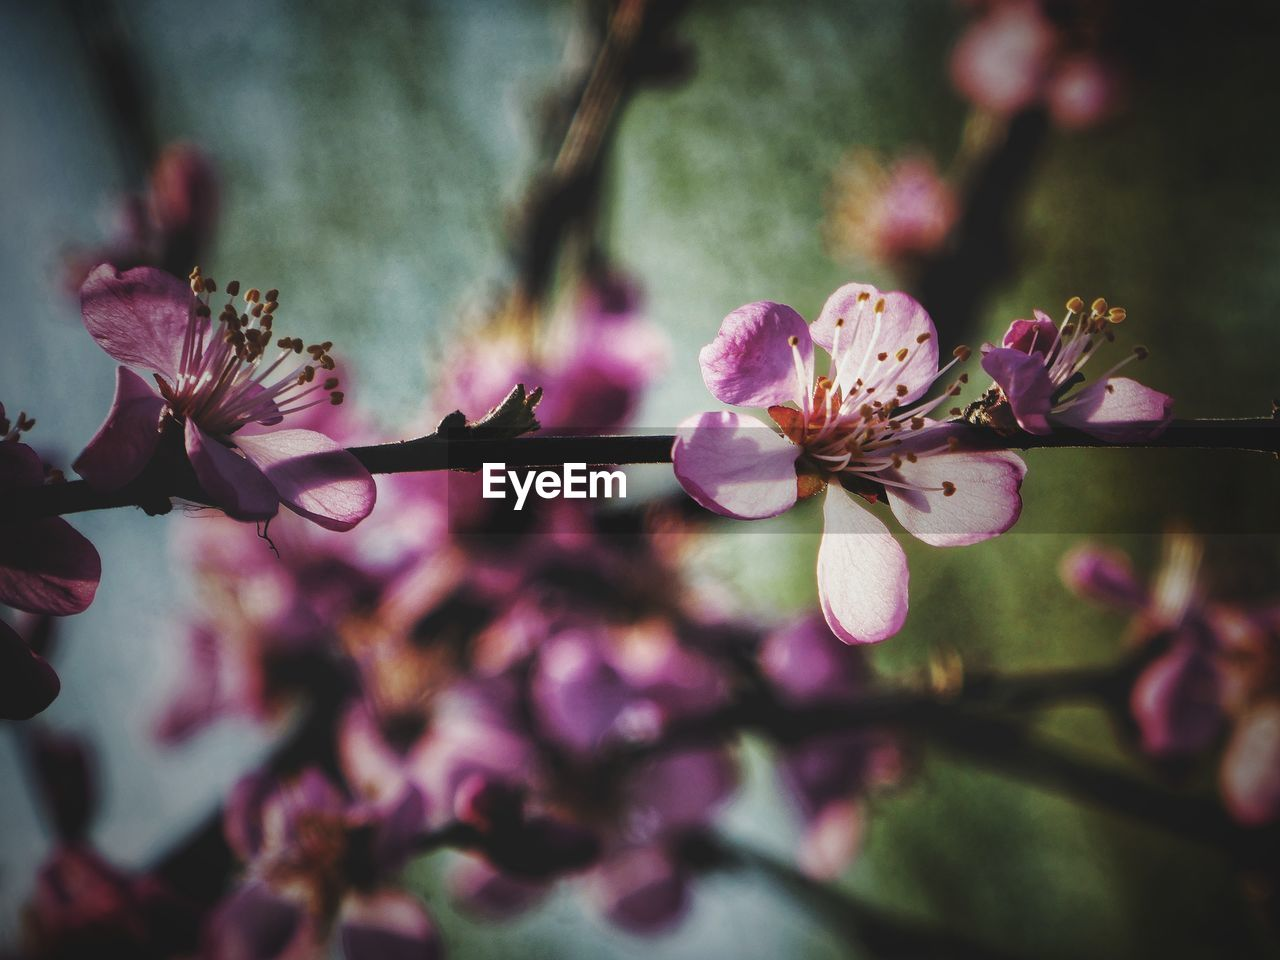 flowering plant, flower, plant, freshness, beauty in nature, fragility, growth, vulnerability, petal, close-up, pink color, blossom, springtime, pollen, inflorescence, tree, flower head, nature, branch, selective focus, no people, cherry blossom, outdoors, cherry tree, spring